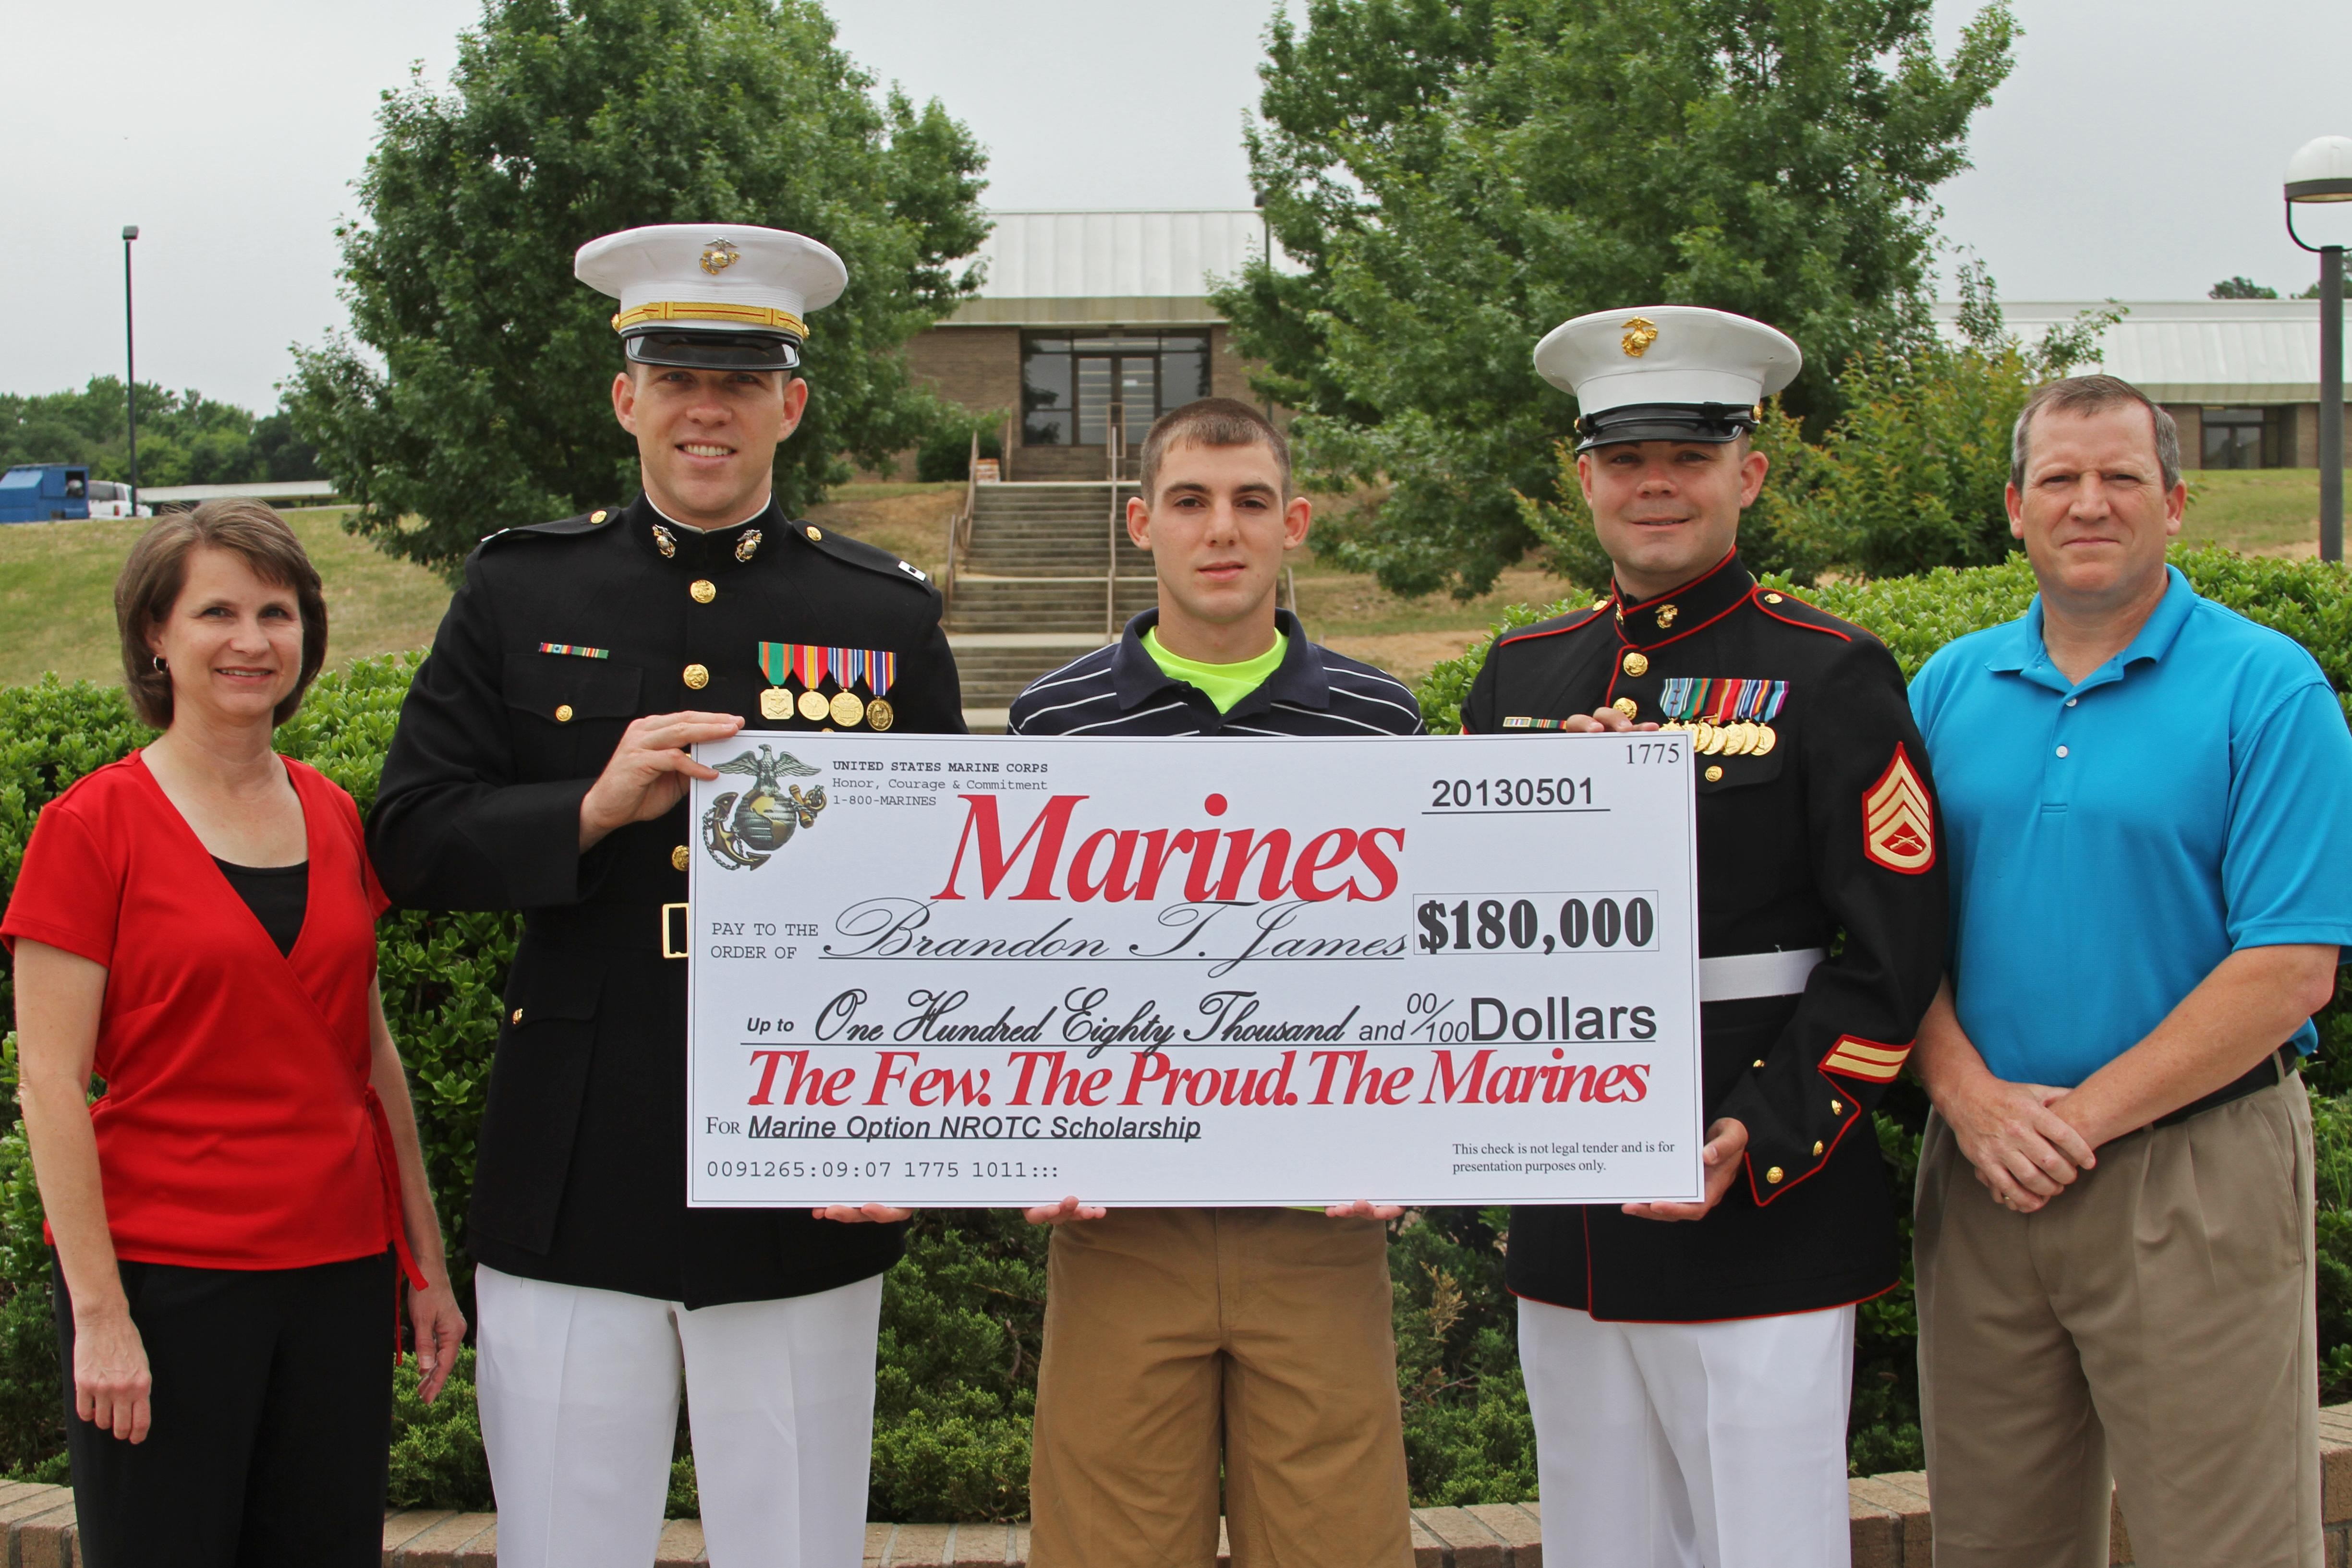 """marine corps nrotc essays Each year students who were not awarded a full nrotc scholarship are  an  essay (one page maximum) that answers these questions: """"what are your top 3  url  a complete application for the marine corps college program  will."""